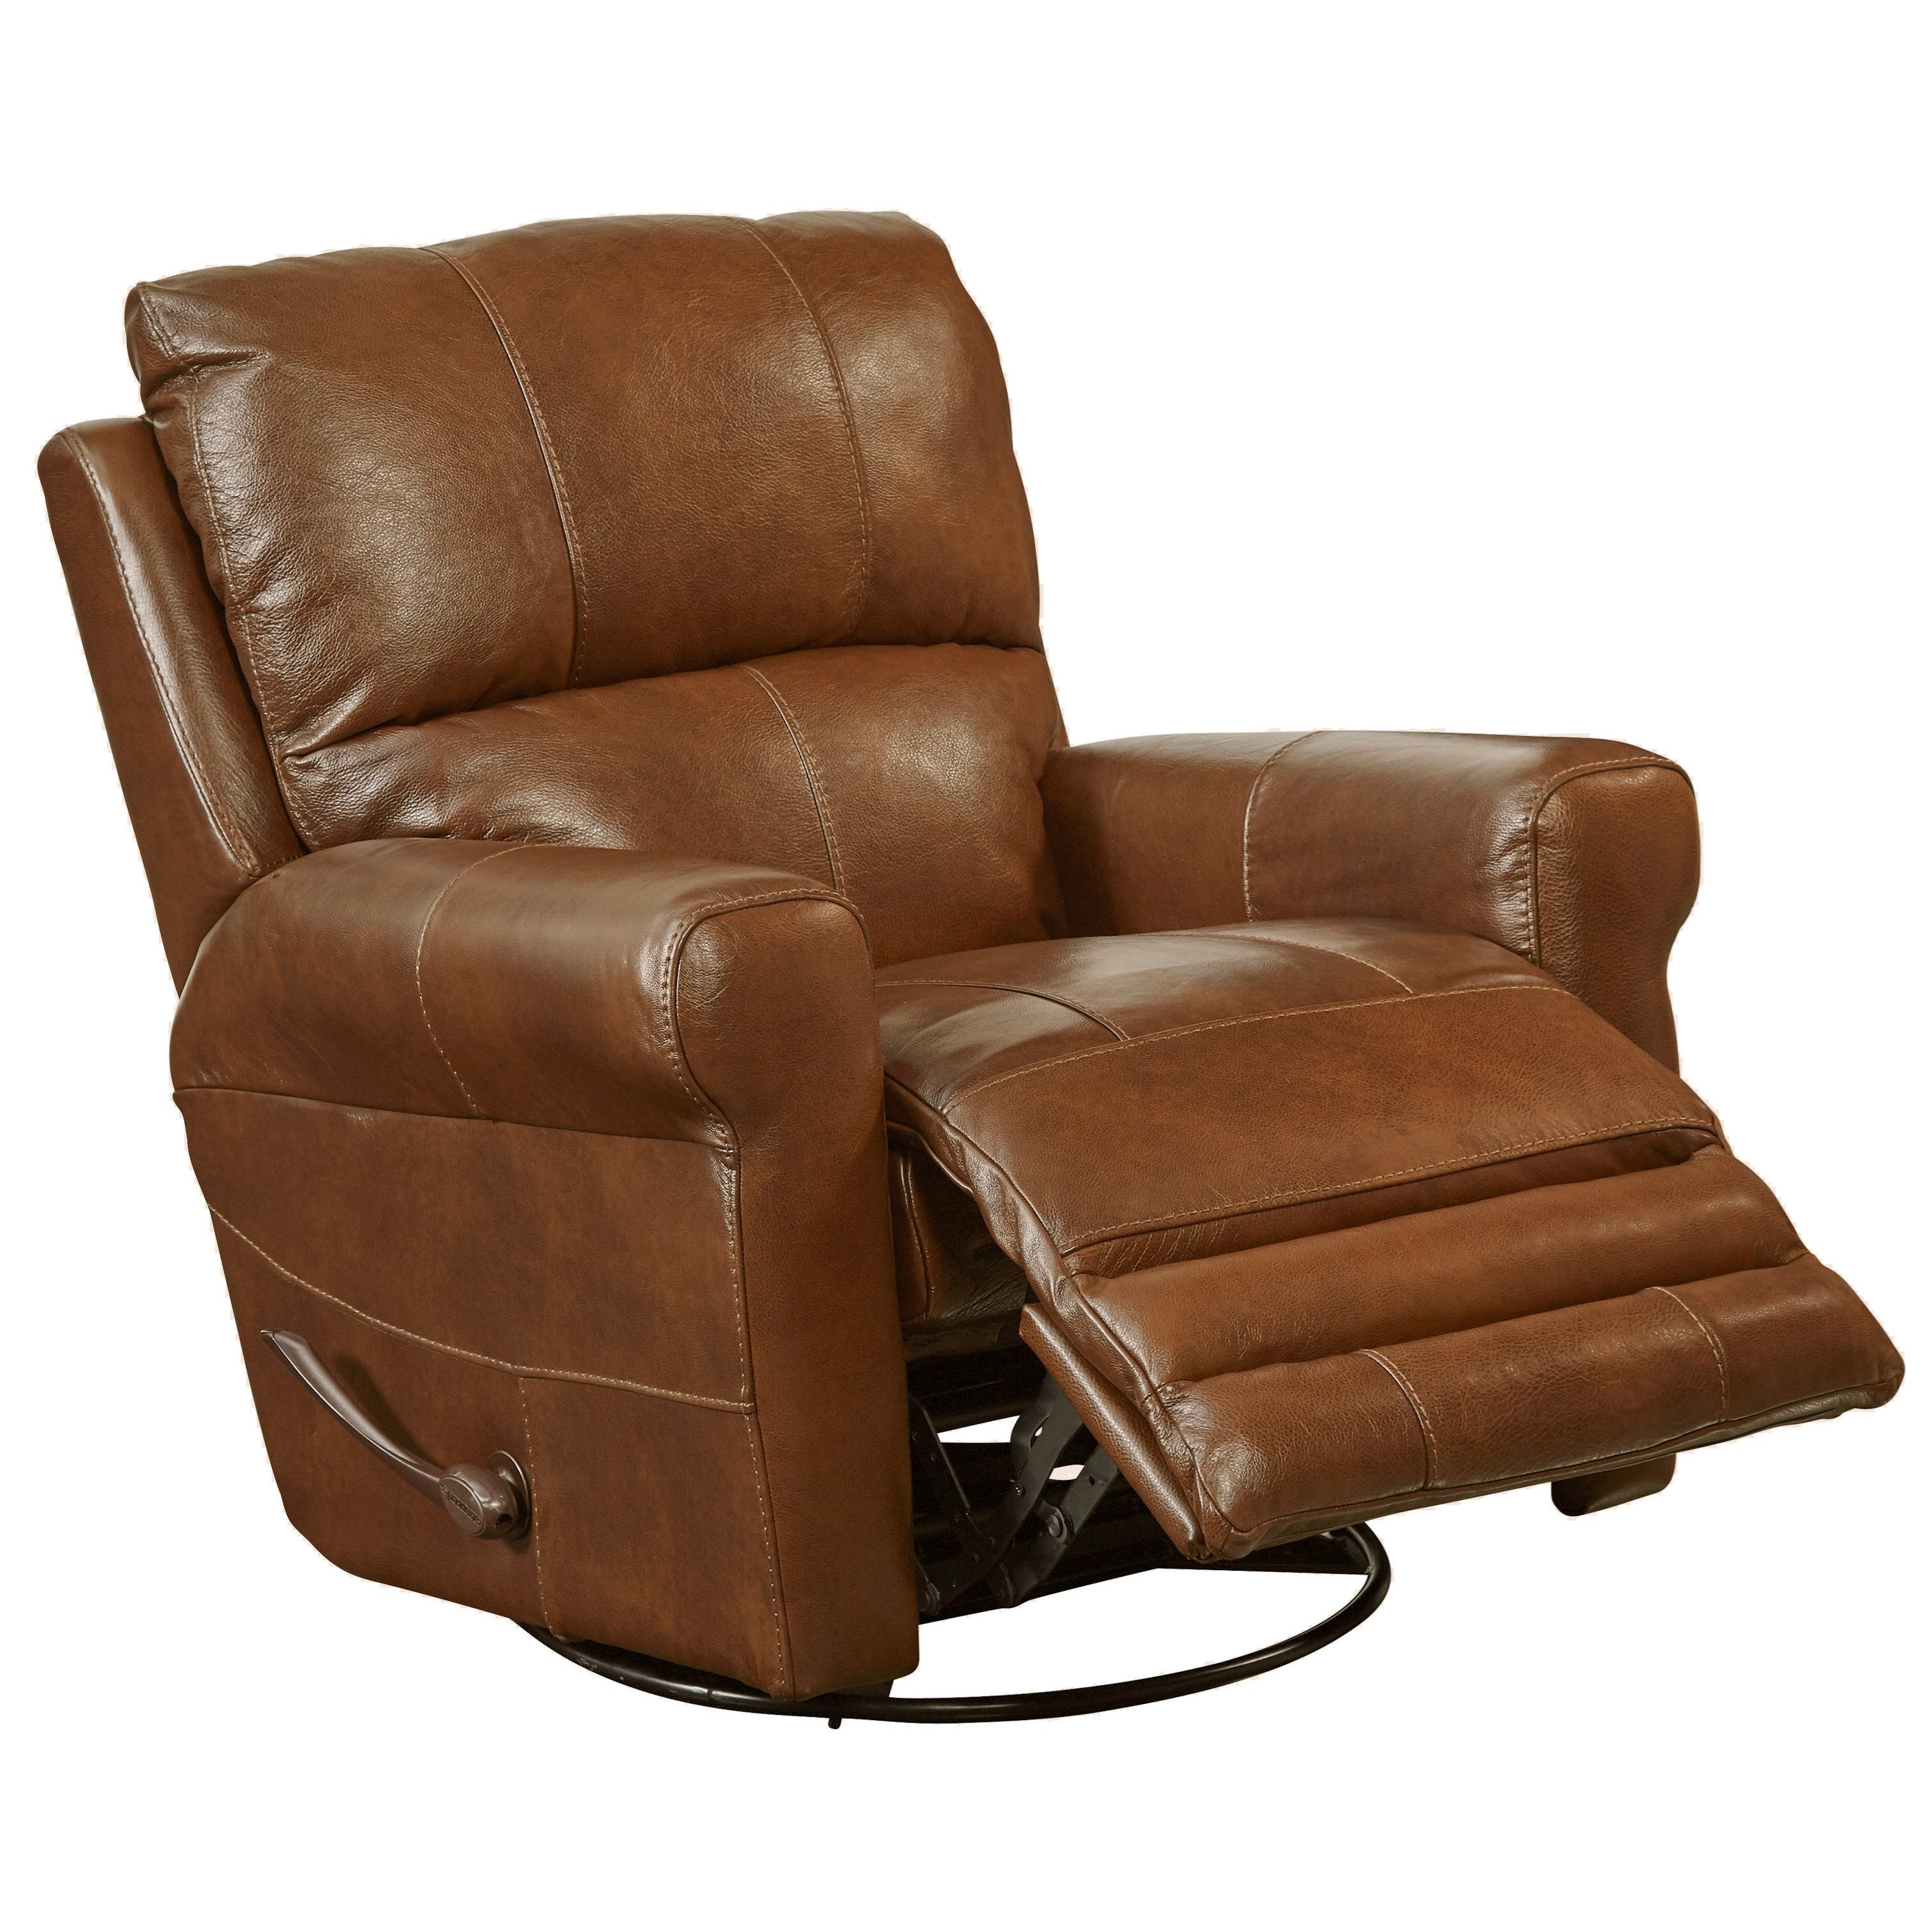 Catnapper Hoffner 64766-7 Power Lay Flat Recliner With USB